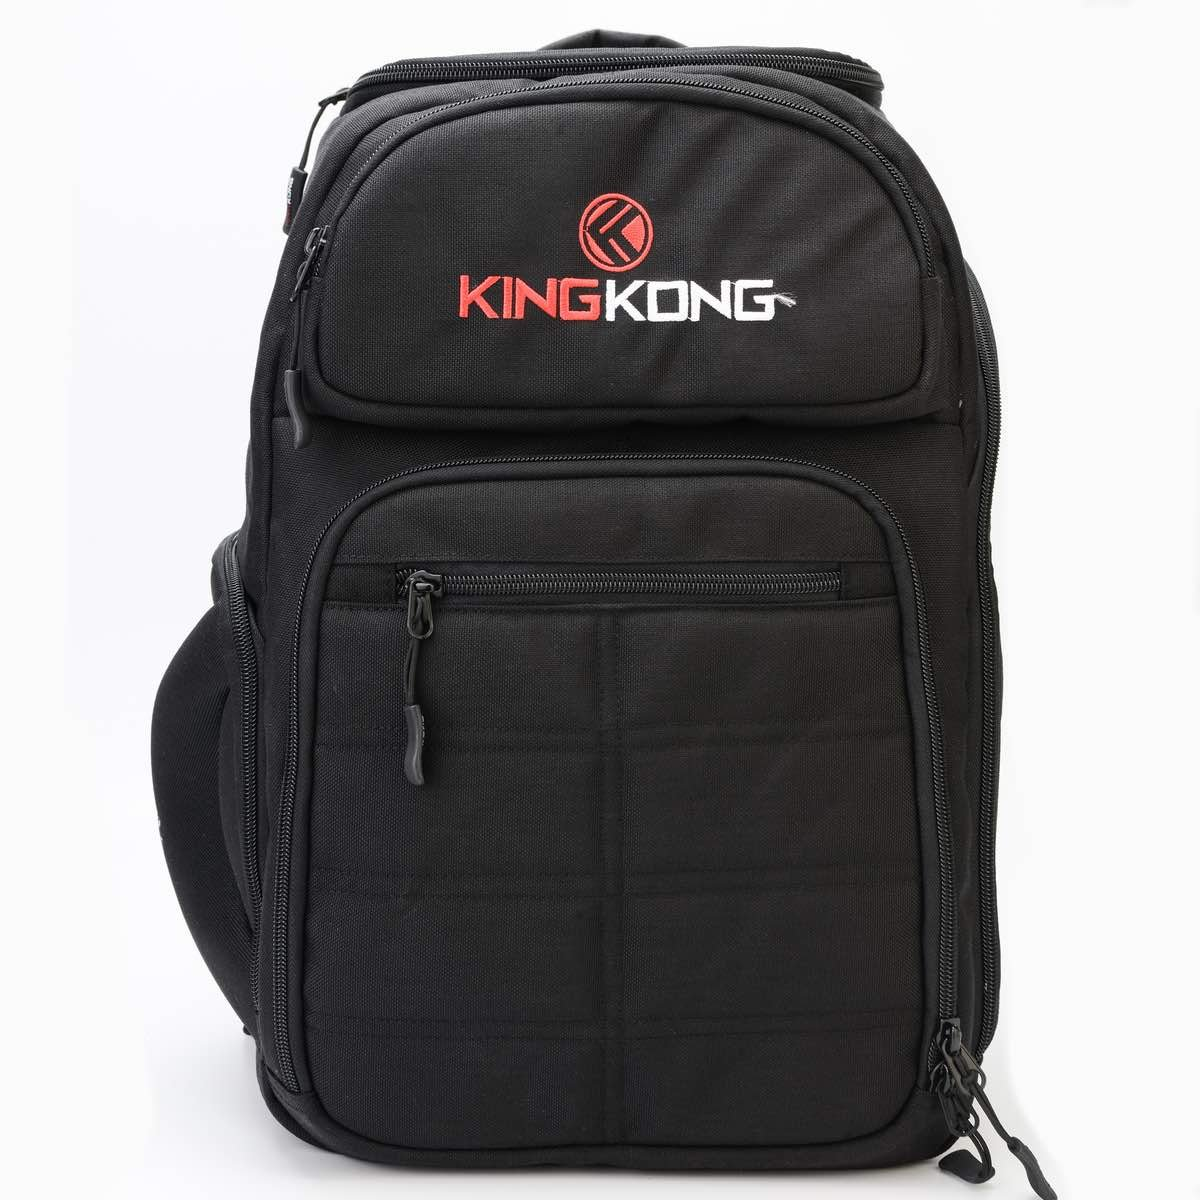 King Kong Fuel Meal Prep Backpack - Insulated Thermal Polyester Lunch Bag, Military Spec Nylon with Two Reusable Ice Packs - Black by King Kong (Image #5)